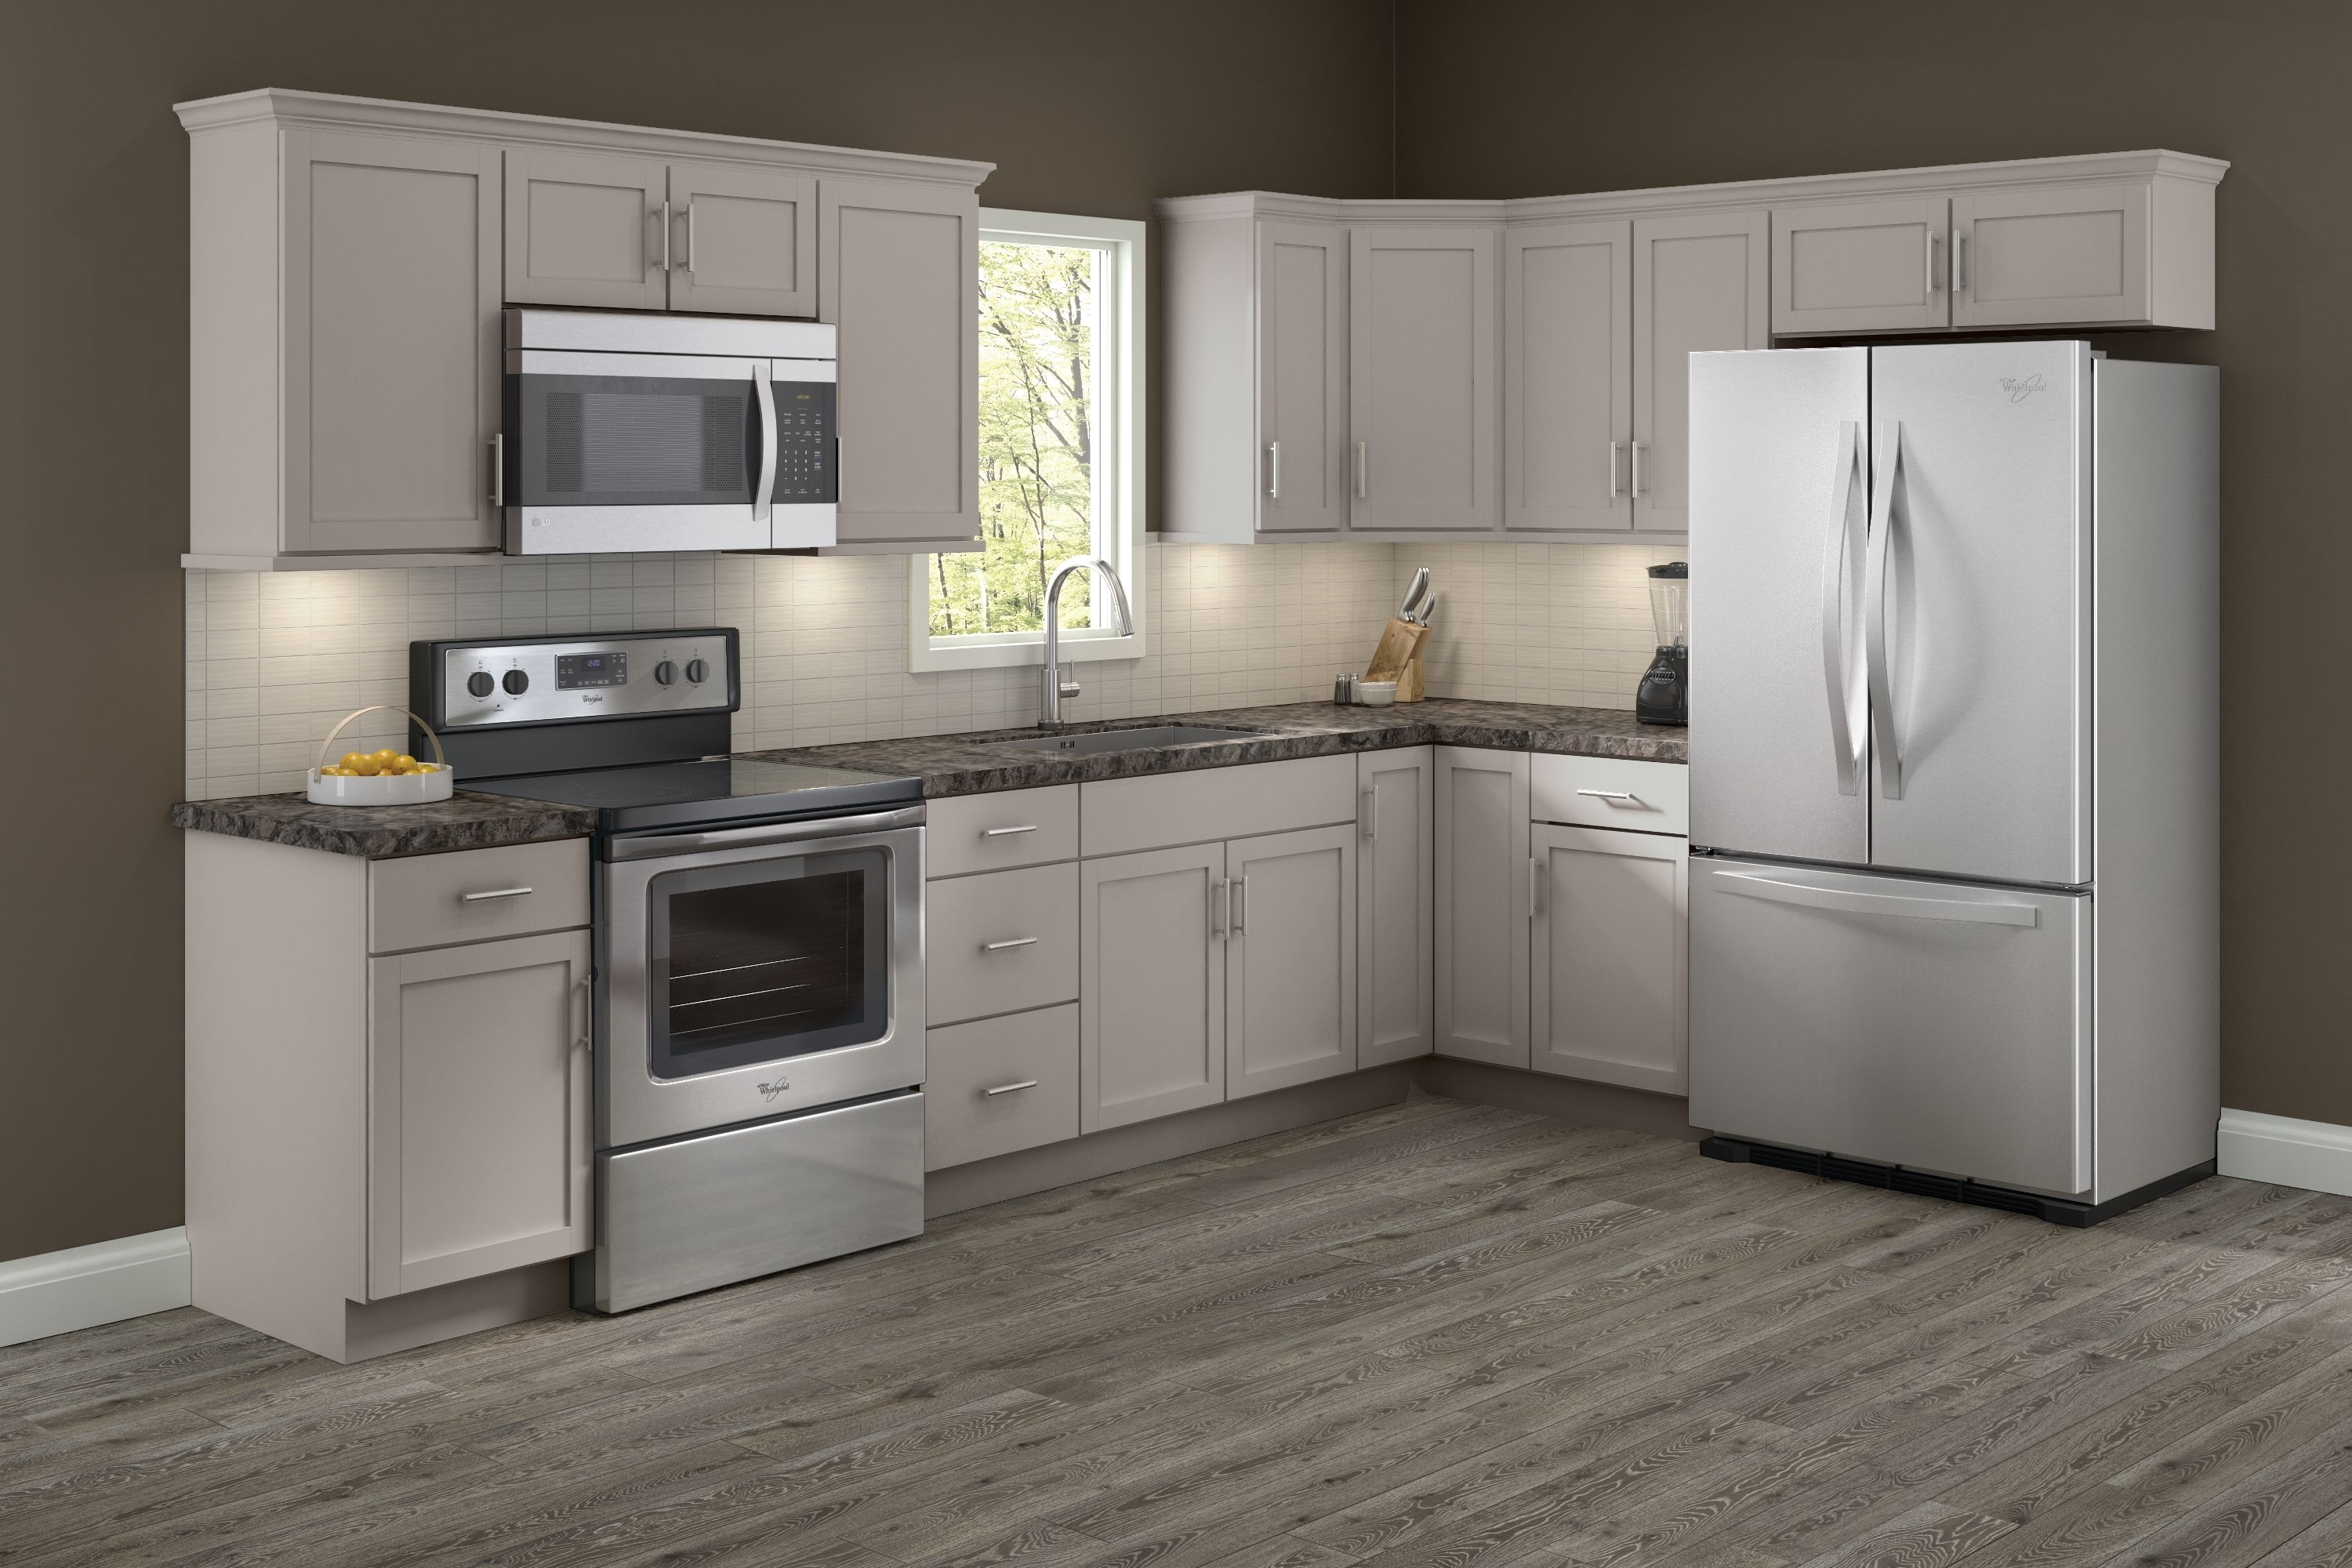 Cabinetry that just makes sense at an everyday value ...